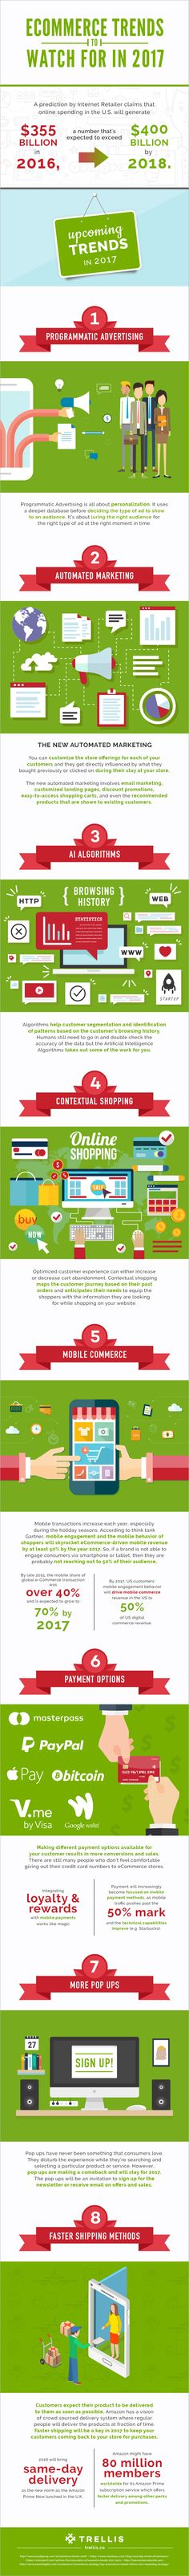 Own an Online Shop? Ecommerce Trends to Watch Out For in 2017 [Infographic]